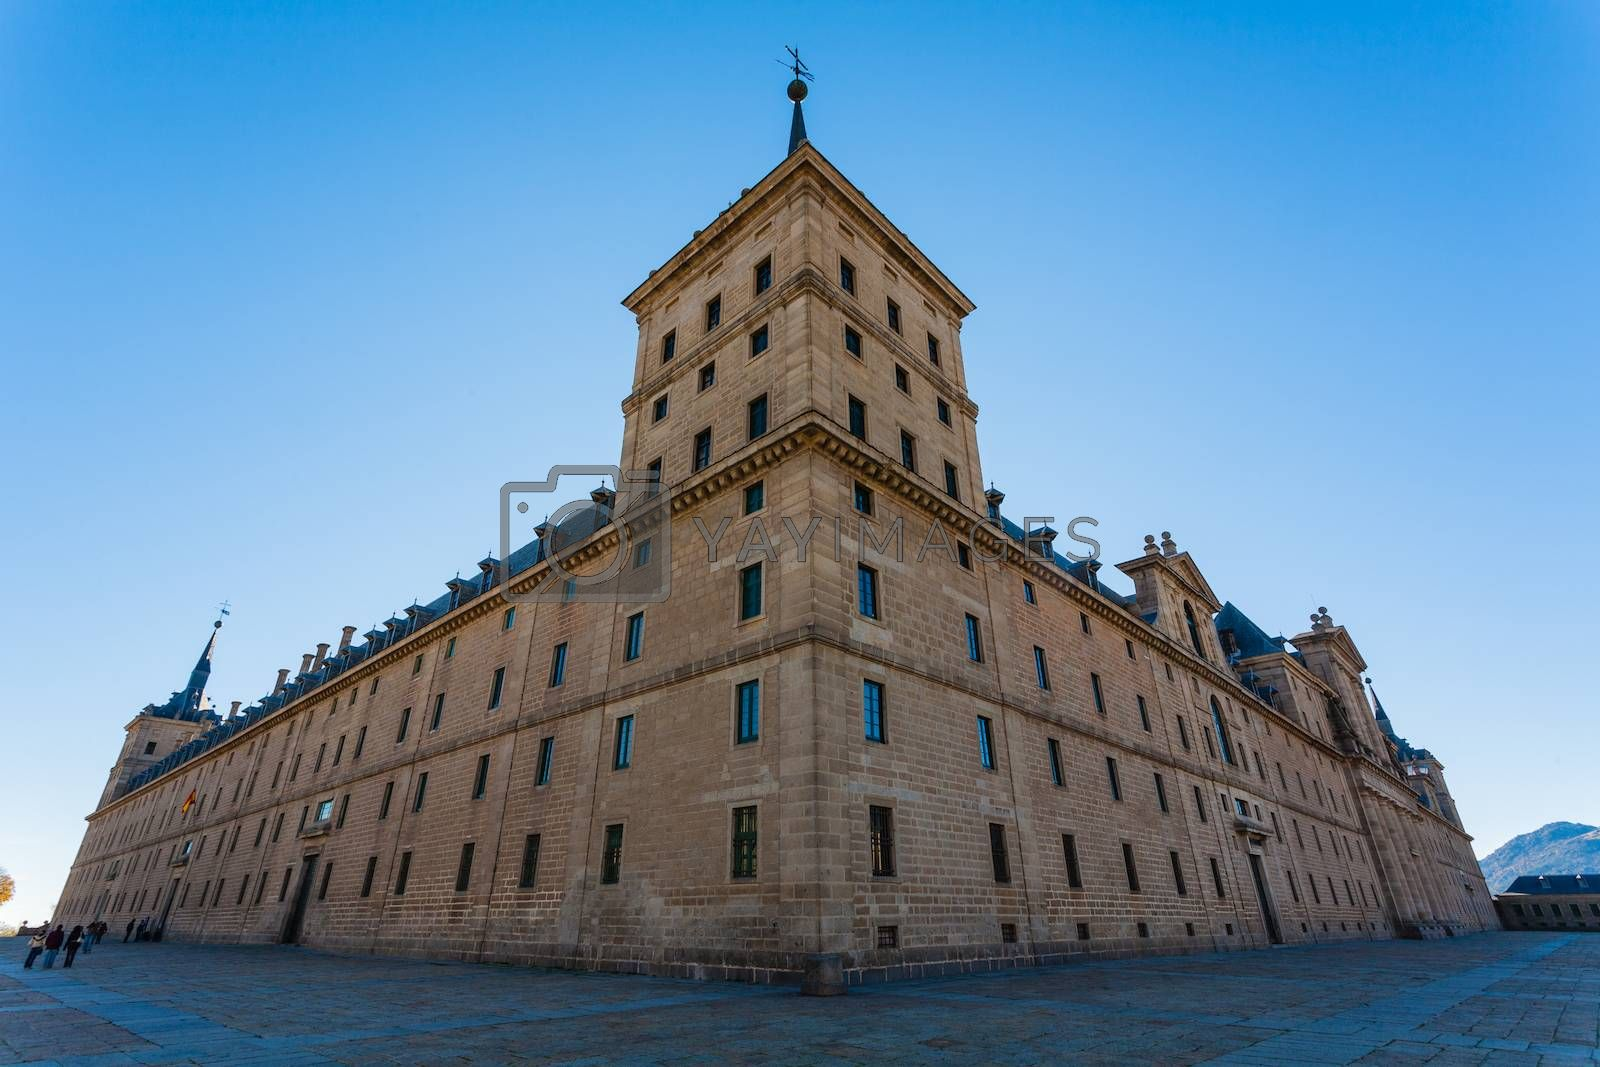 Full view of San Lorenzo de El Escorial Royal Site  taken from the big outdoors square showing its enormous architectural structure , Madrid Spain